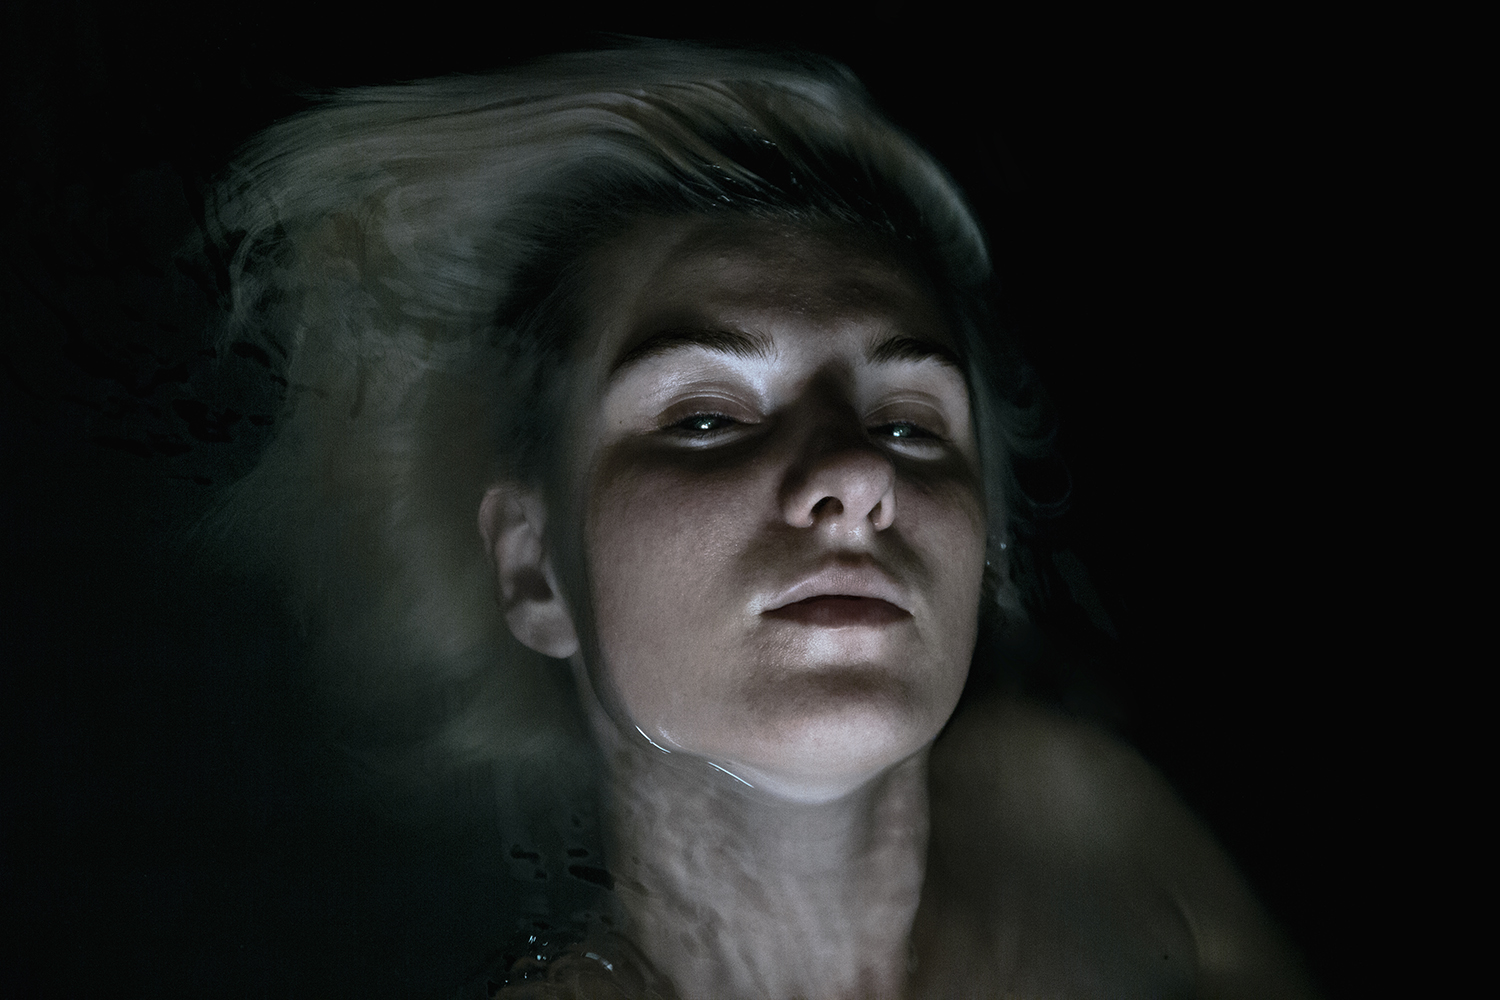 Elena Helfrecht - woman half-submerged in dark water